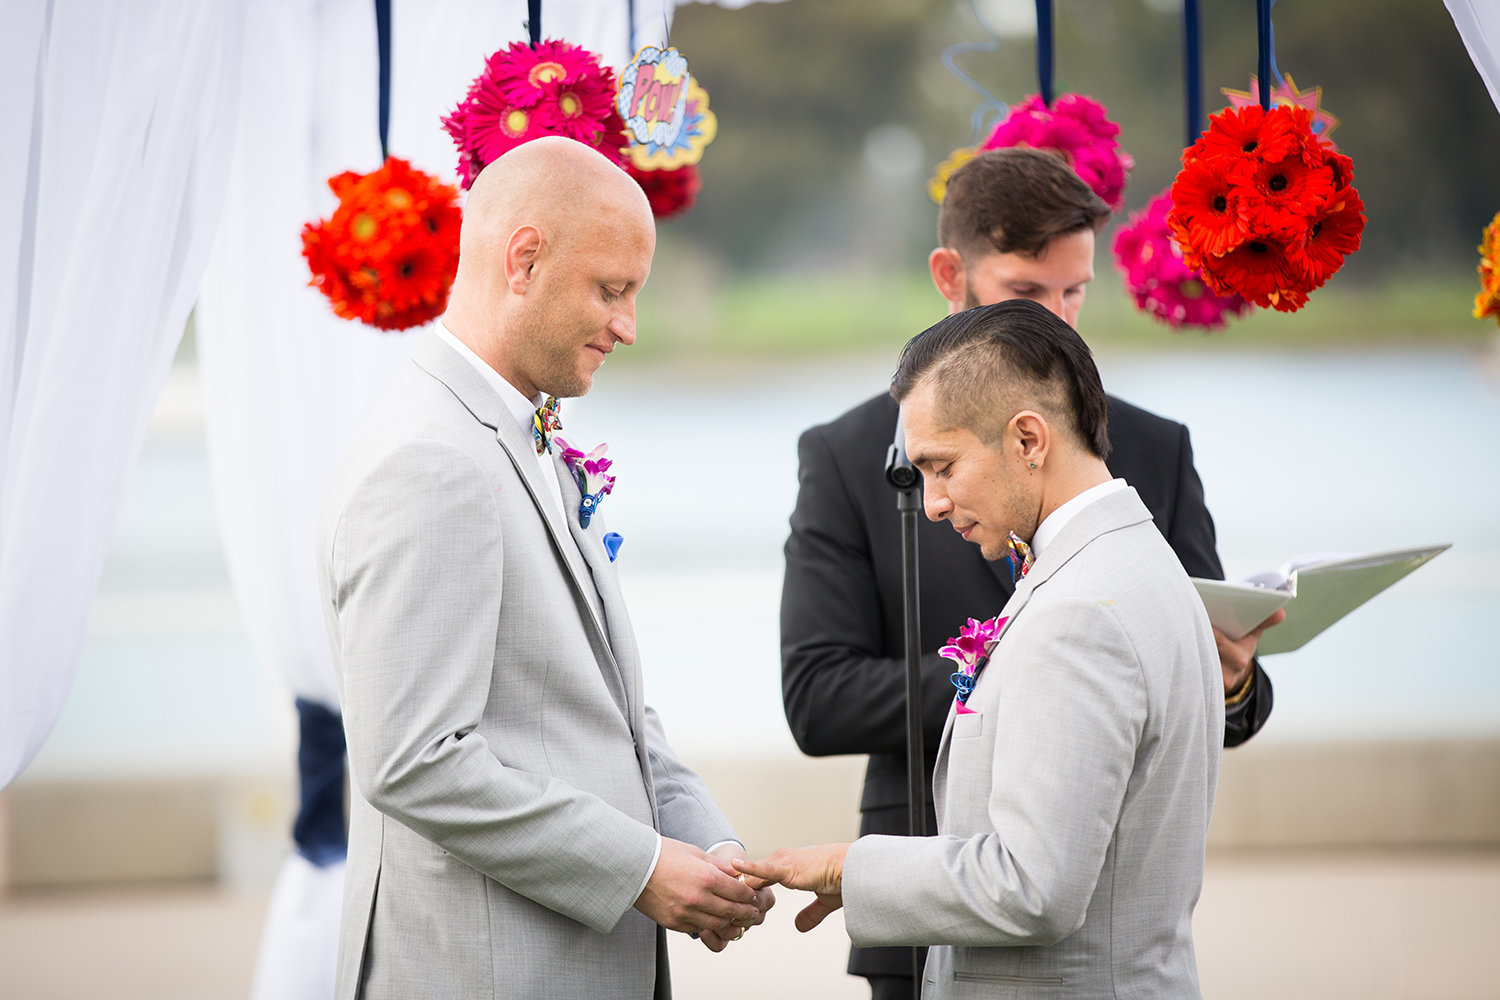 Grooms exchange rings | LGBT Wedding | Coronado